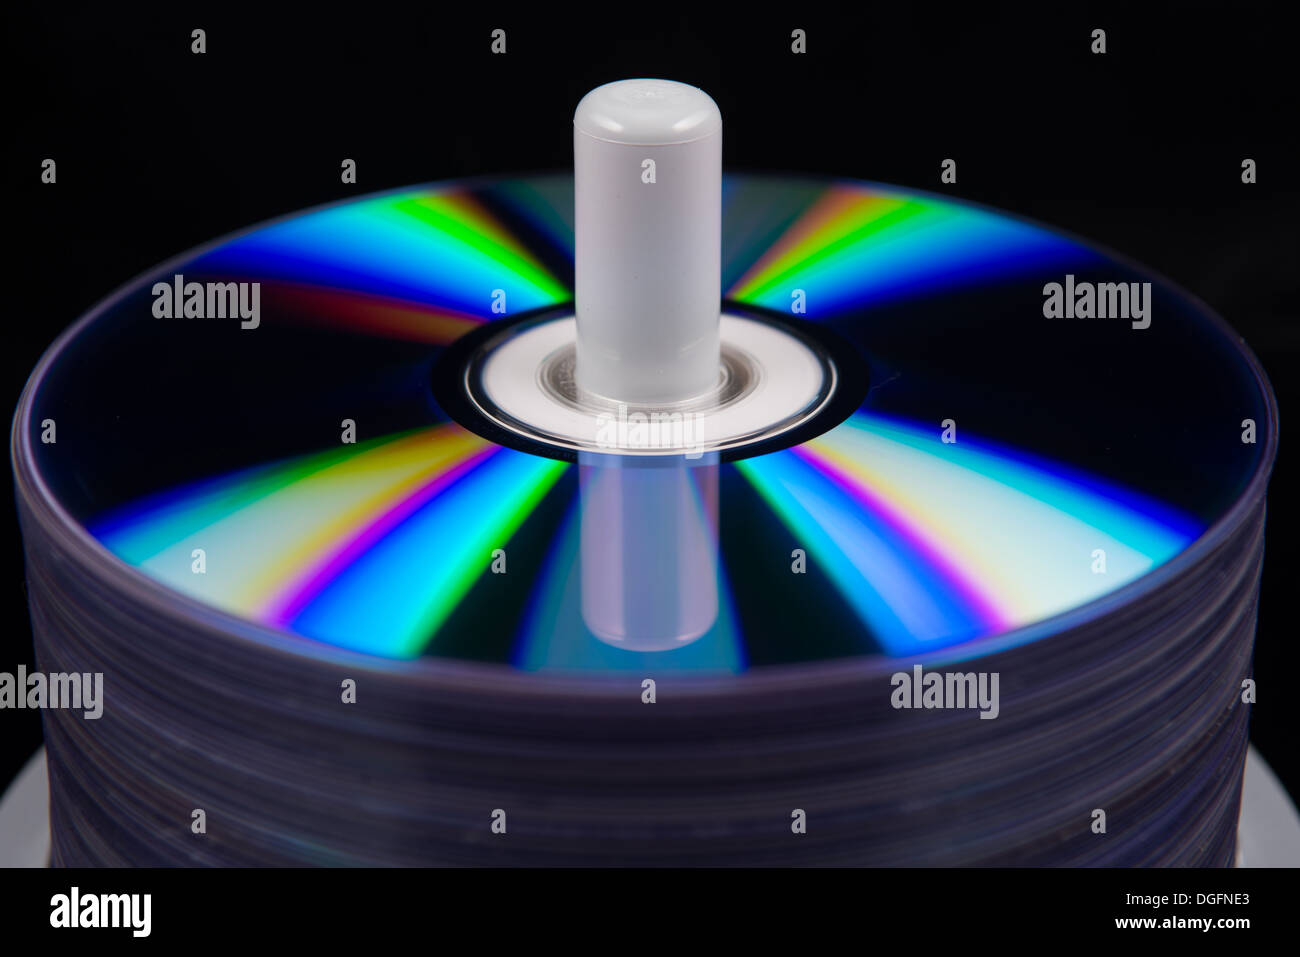 stack of dvd's, cd's close up Stock Photo